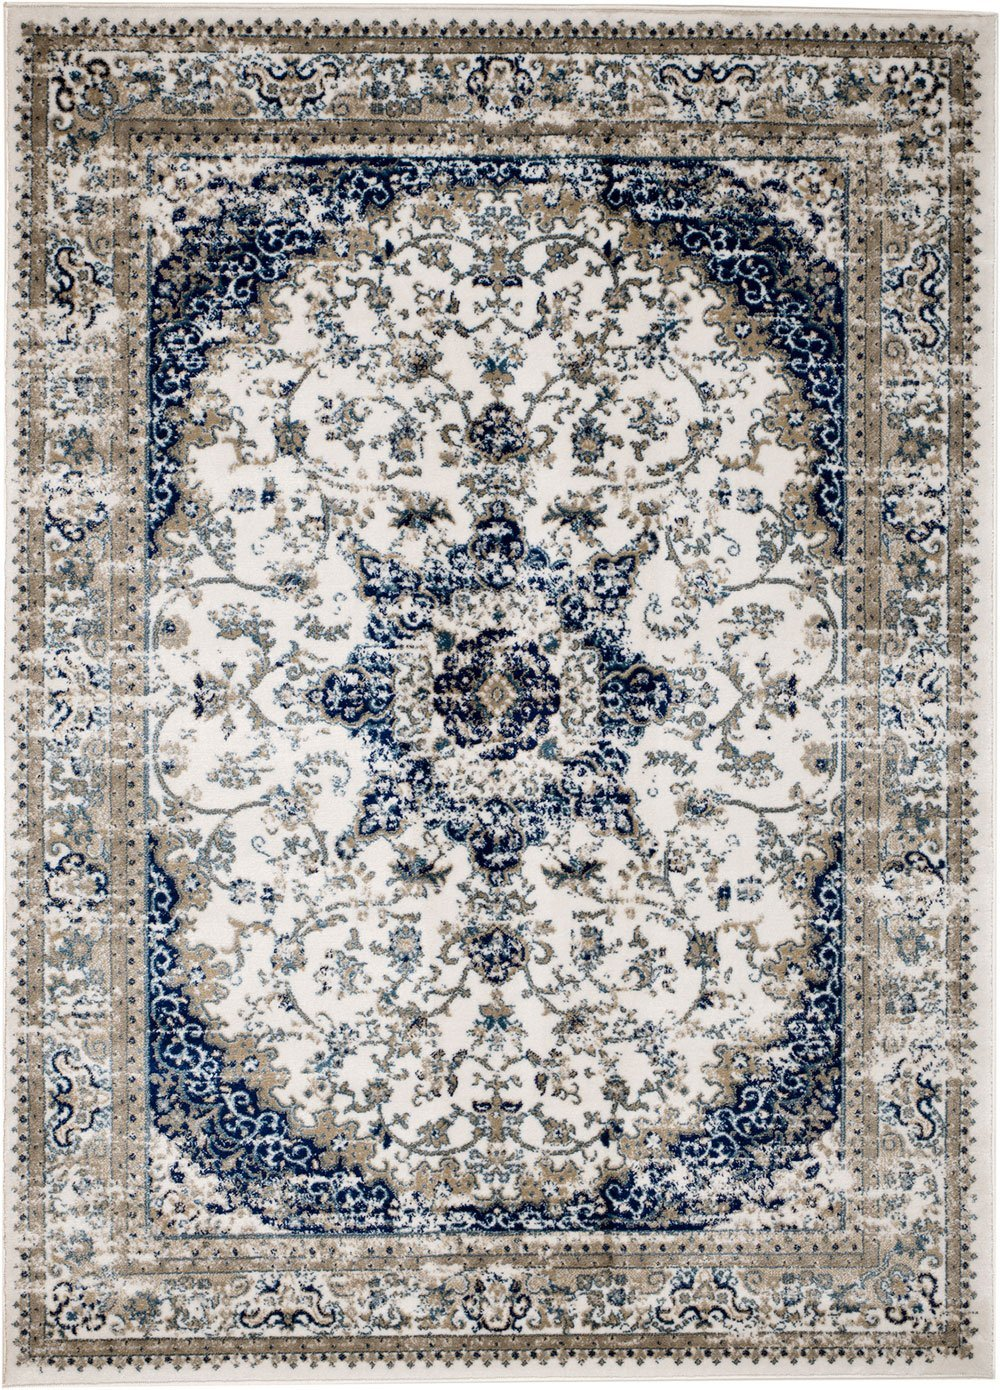 MADISON COLLECTION 401 Vintage Distressed Style Area Rug Clearance Soft Pile Durable Size Option , 7 .4 x 10 .6